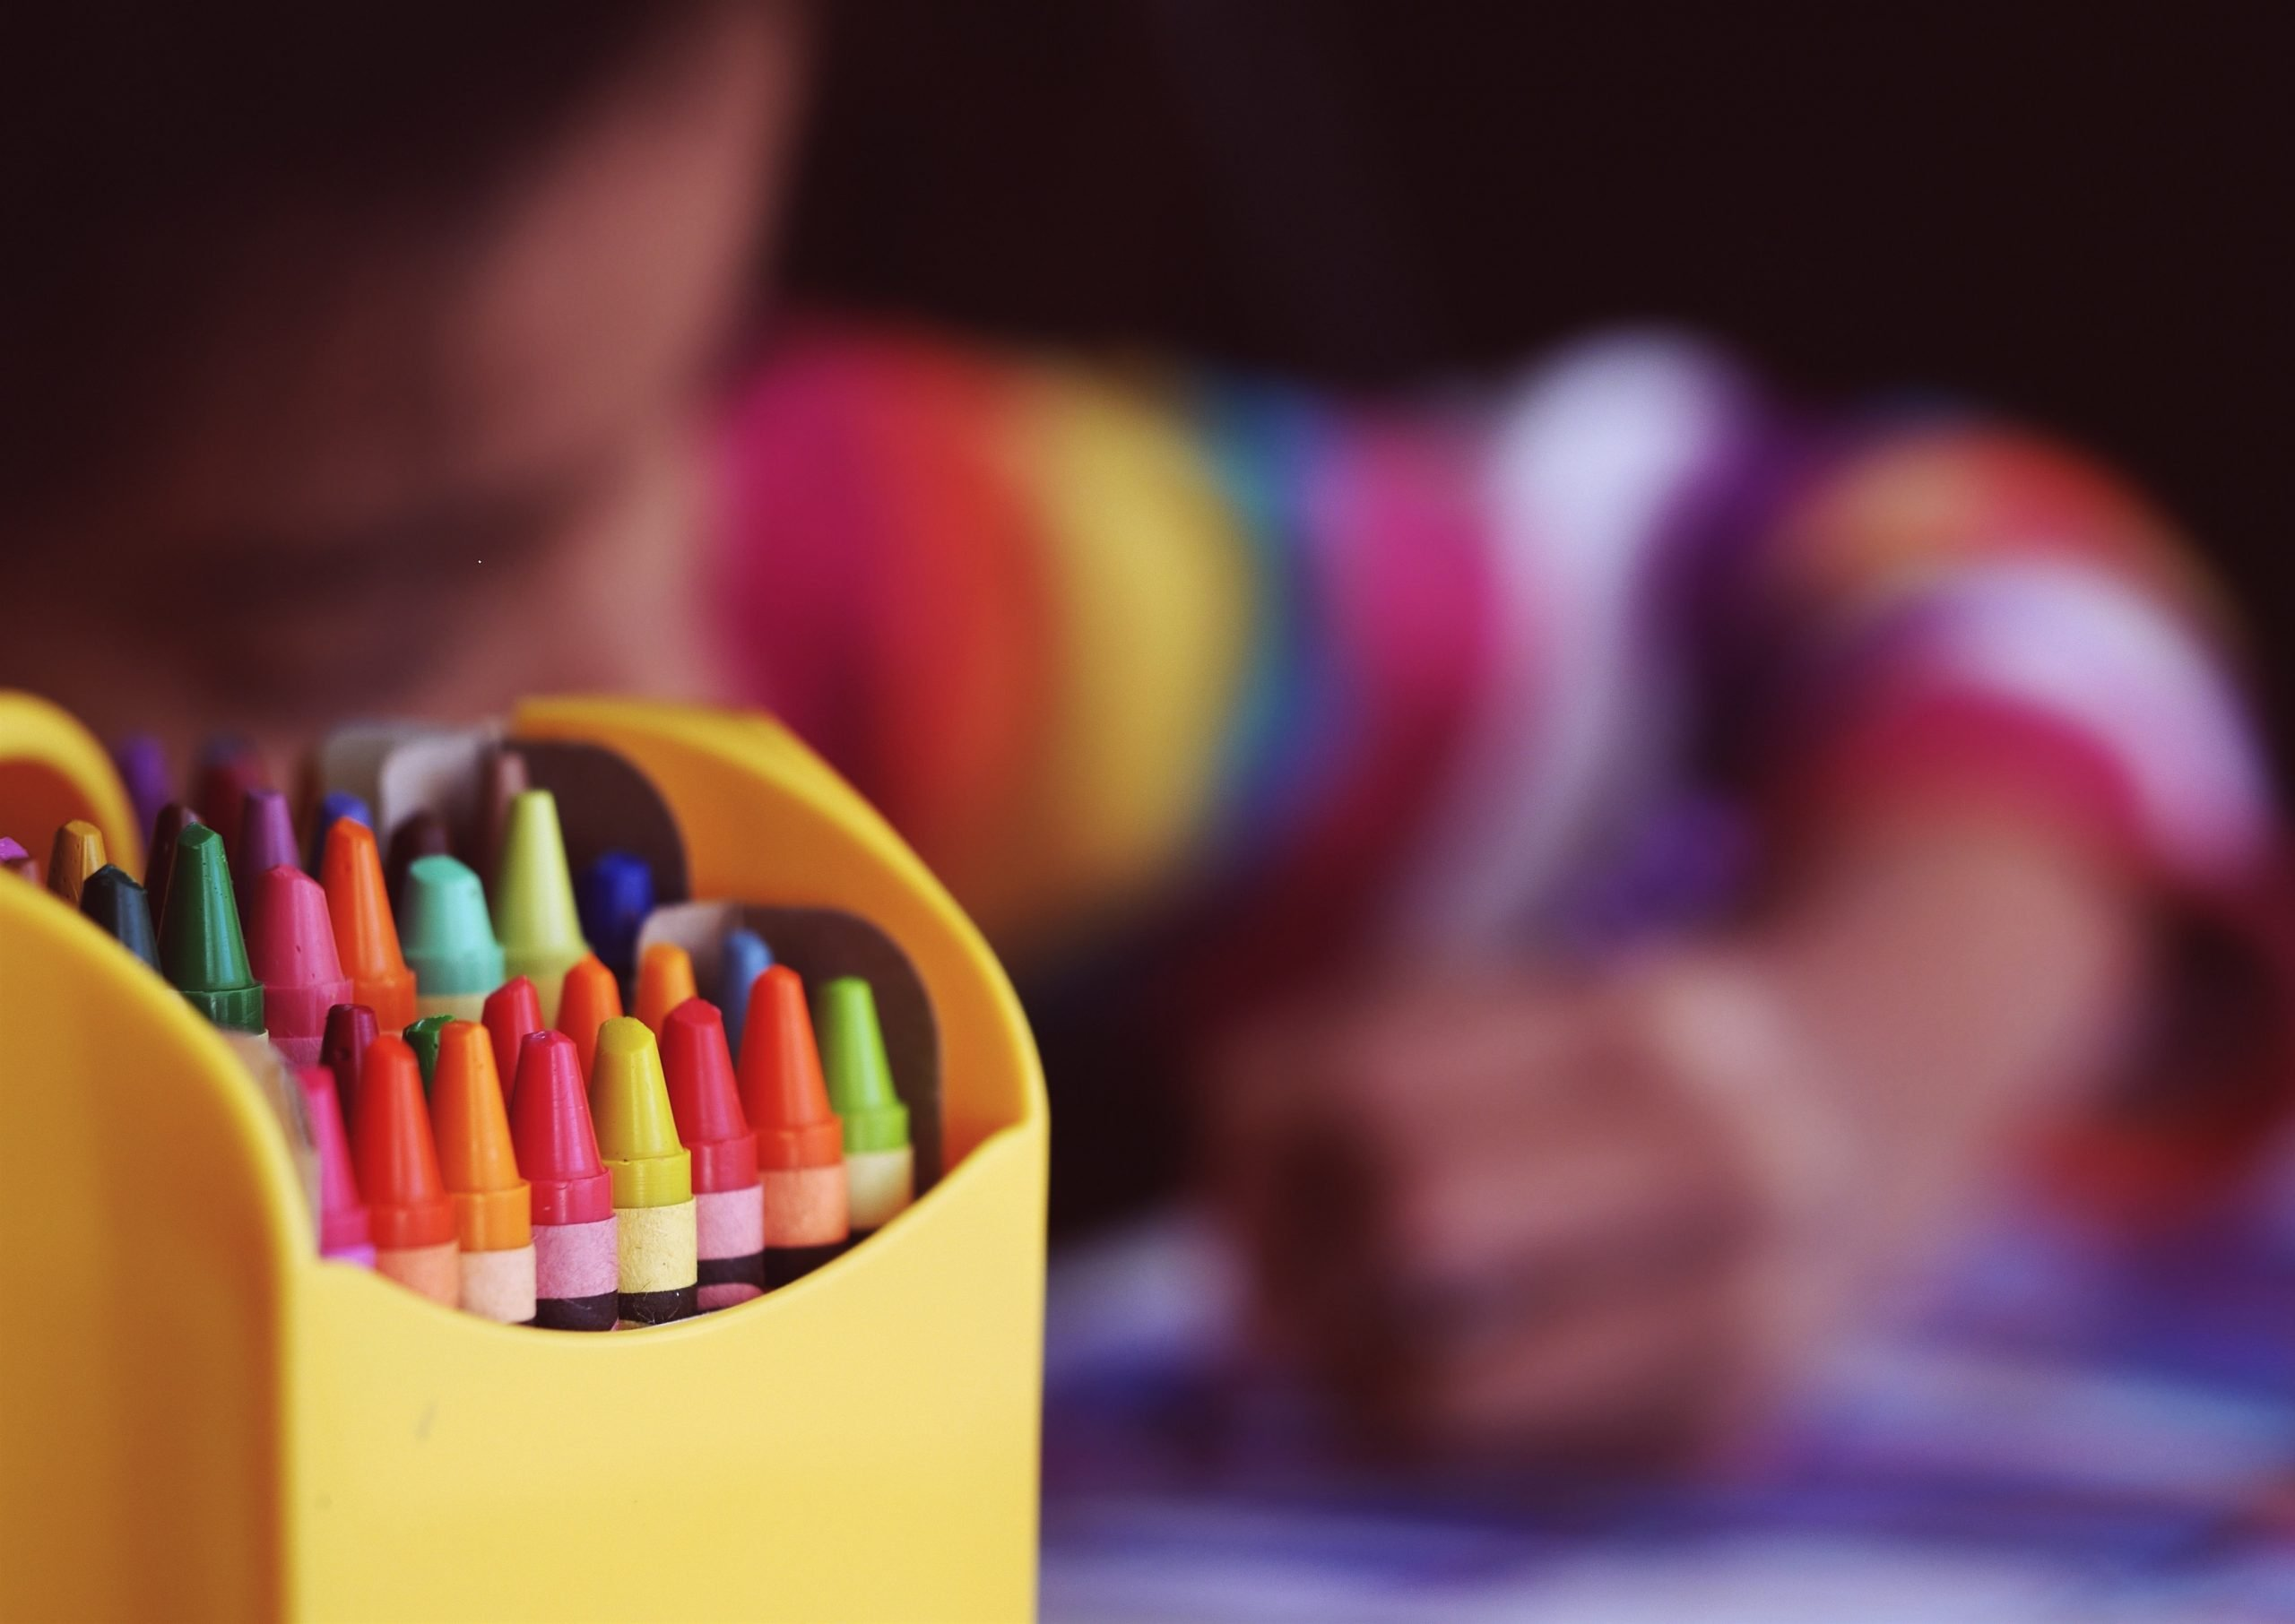 Focus on a pack of coloured crayons and a child blurred in the background drawing